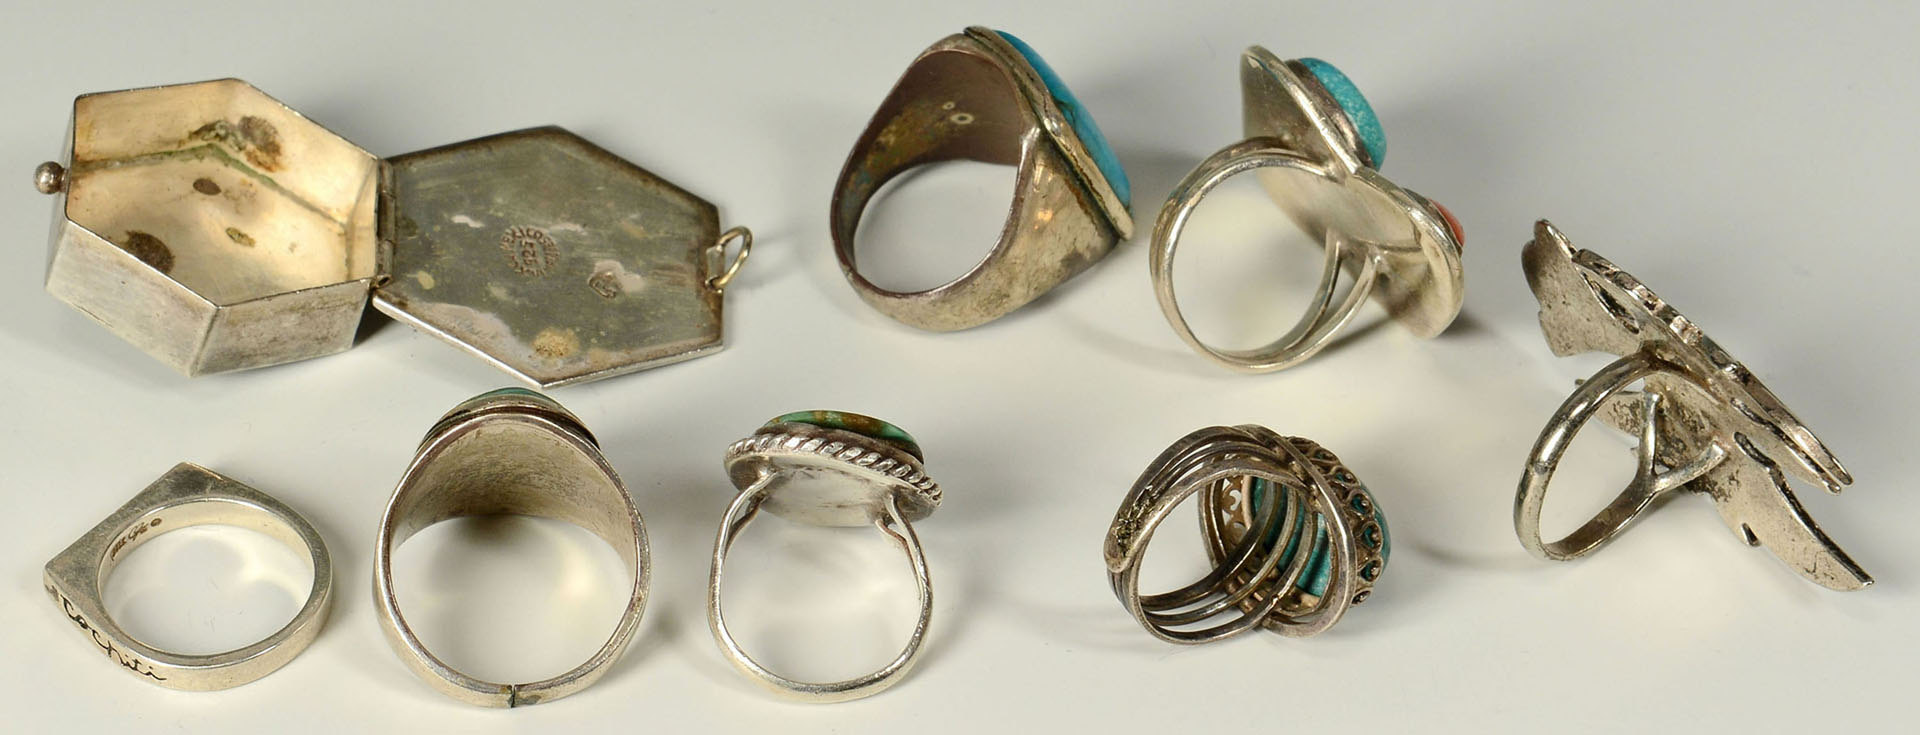 Lot 388: Mexican Designer Jewelry w/ SW American Jly